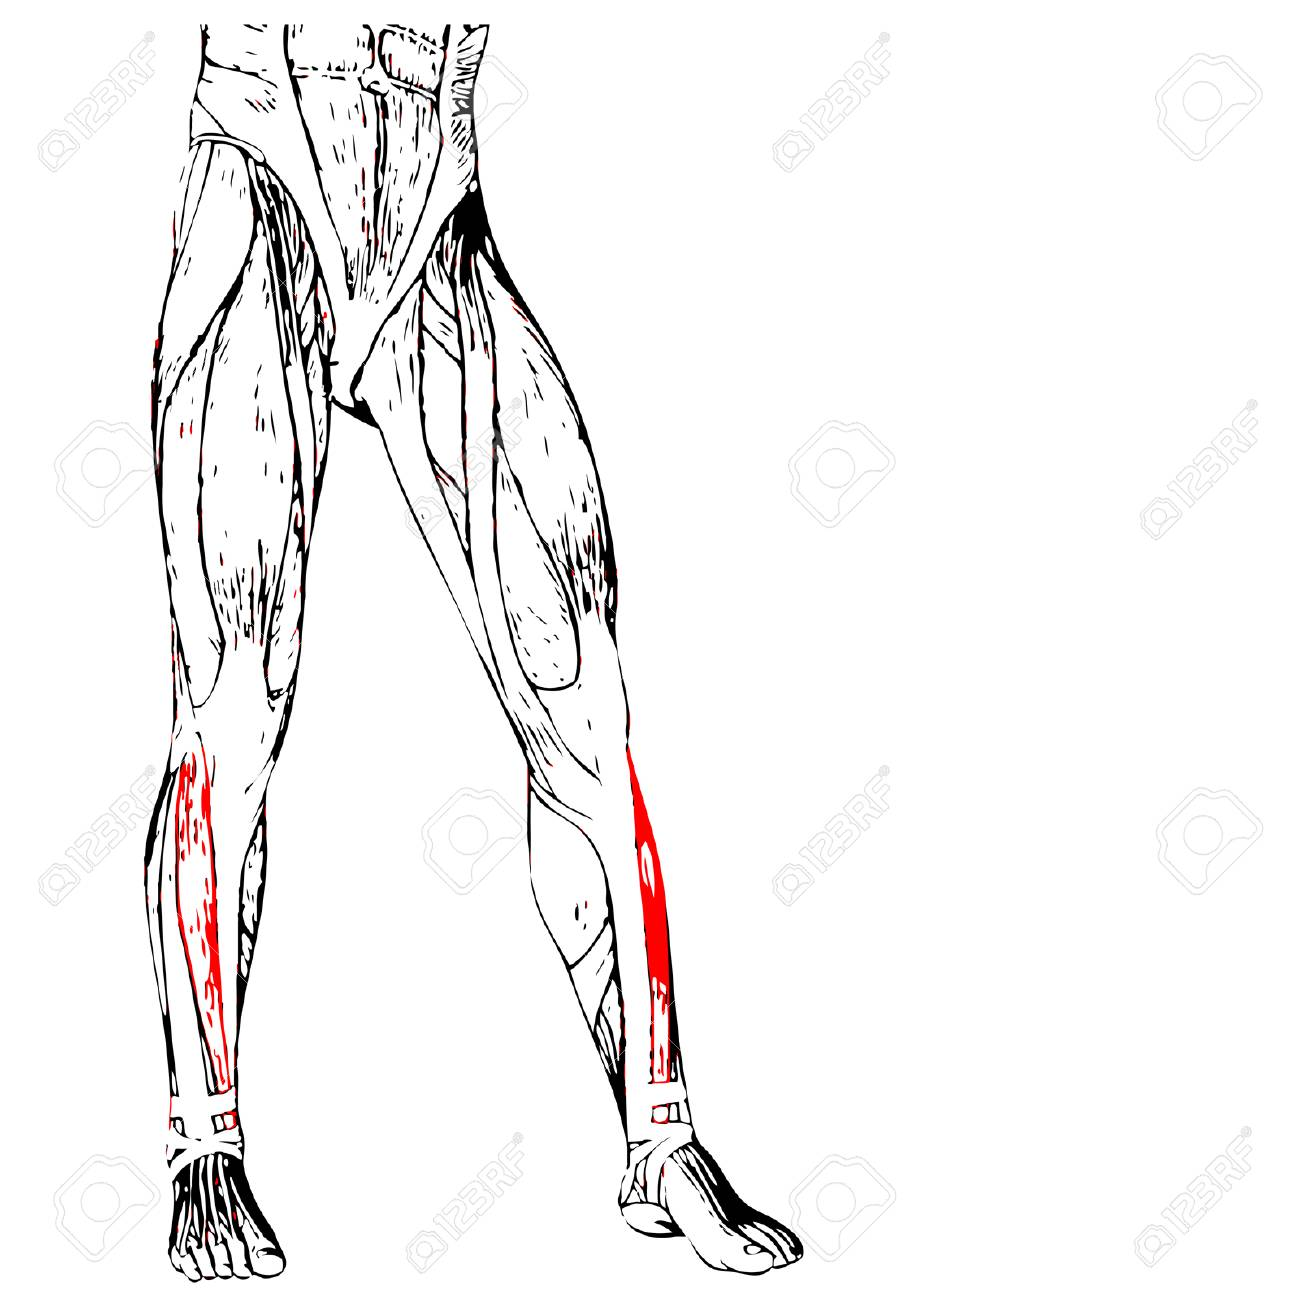 Concept Or Conceptual 3D Human Lower Leg Anatomy Or Anatomical ...